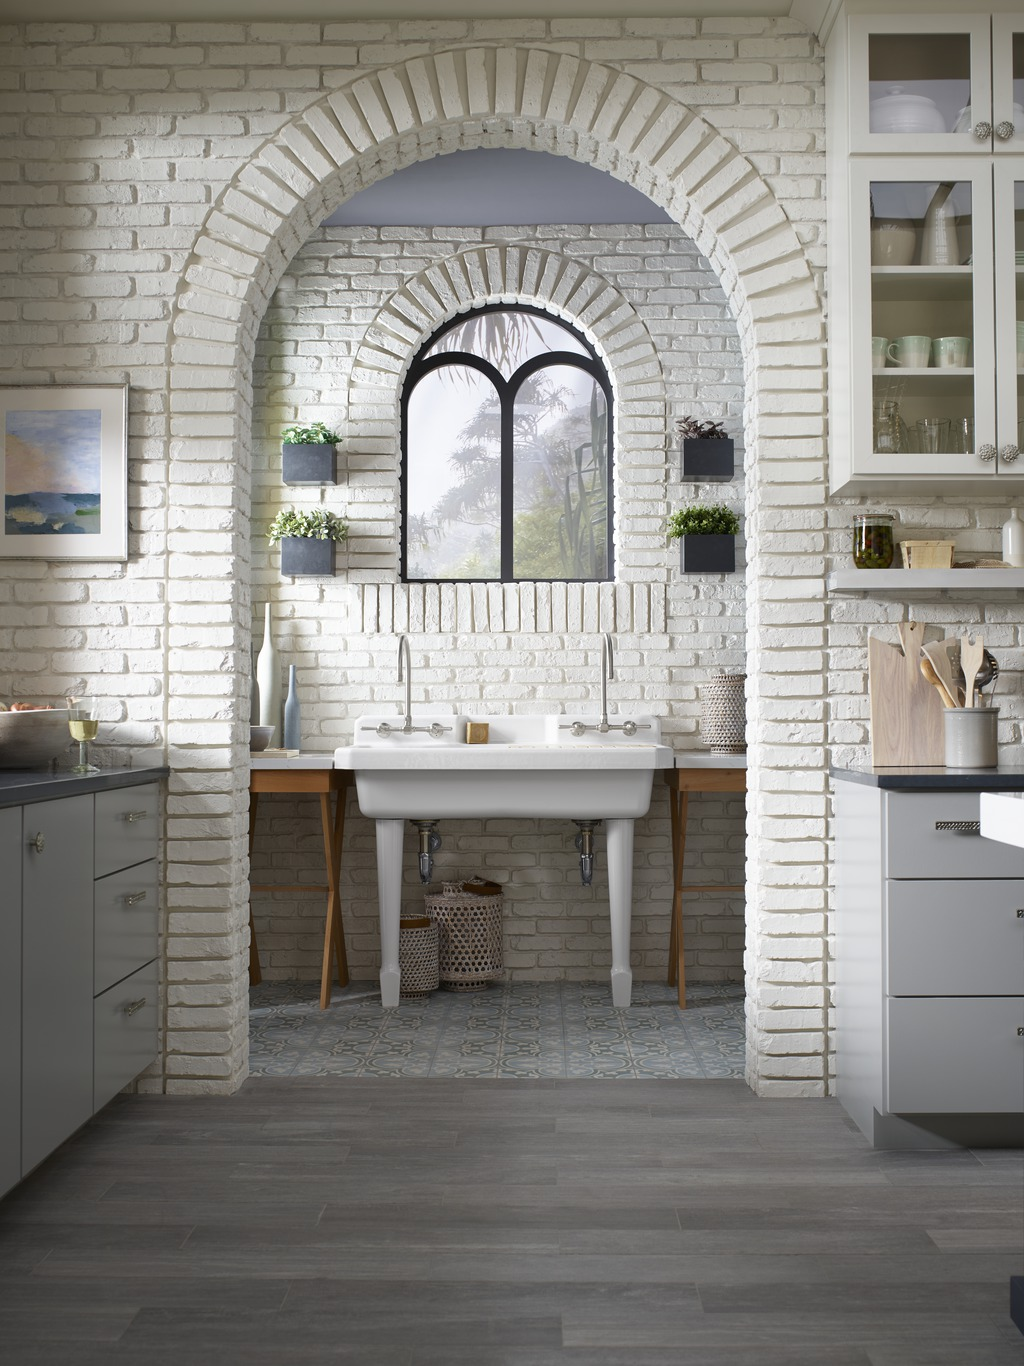 Cloud Cover OC-25     HiRise Wall-Mount Kitchen Sink Faucets     Harborview Utility Sink     Admiring eyes peek through layers of architectural arches and discover the utilitarian beauty of a retro-style laundry sink that flows seamlessly into the design that surrounds it.